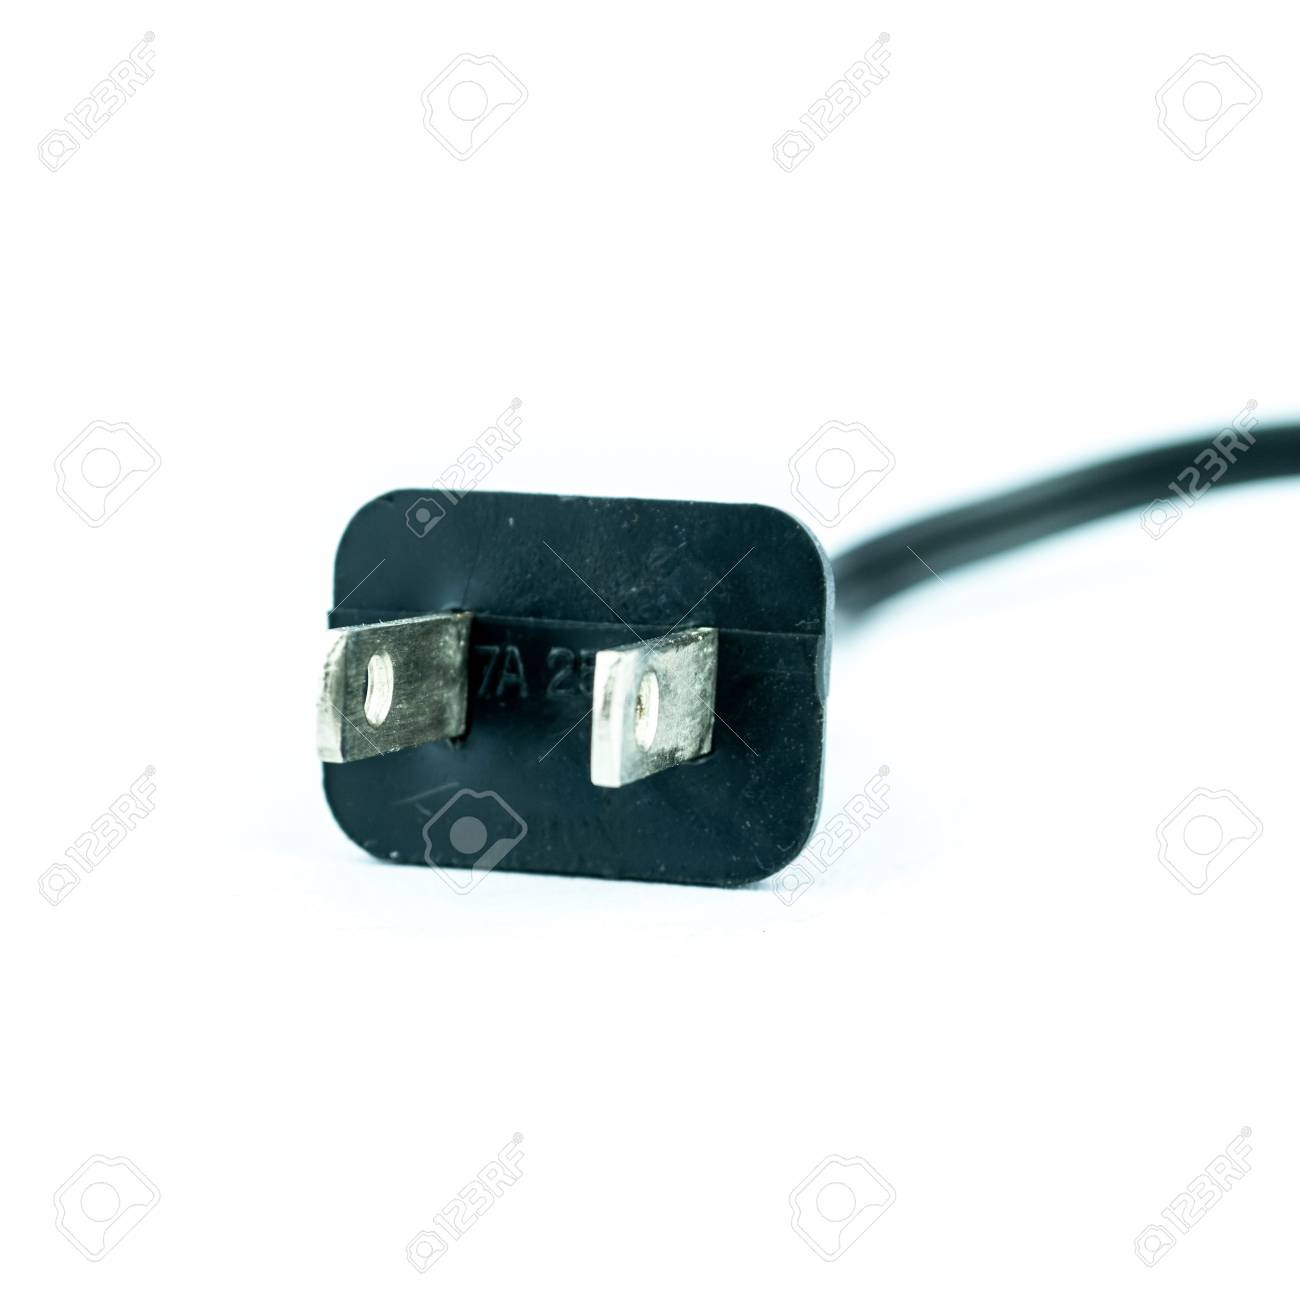 Electric plug - power plug - Black electric cable isolated on white Stock Photo - 20366371